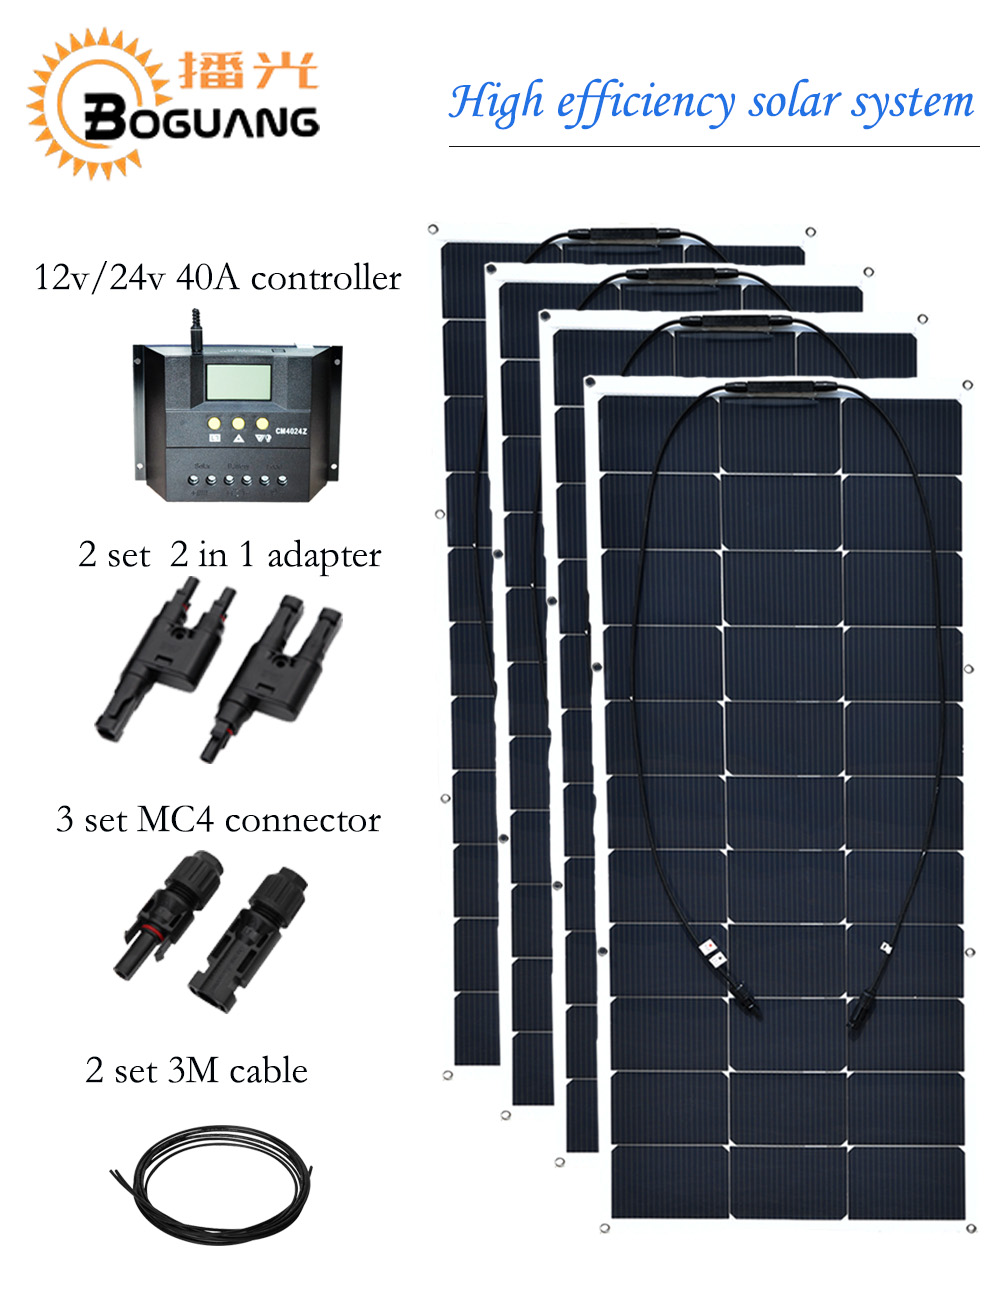 Boguang12v/24v /40A controller  400w flexible solar panel cell  2 in 1 adapter MC4 connector cable 12v battery RV yacht boat boguang 500w semi flexible solar panel solar system efficient cell diy kit module 50a mppt controller adapter mc4 connector